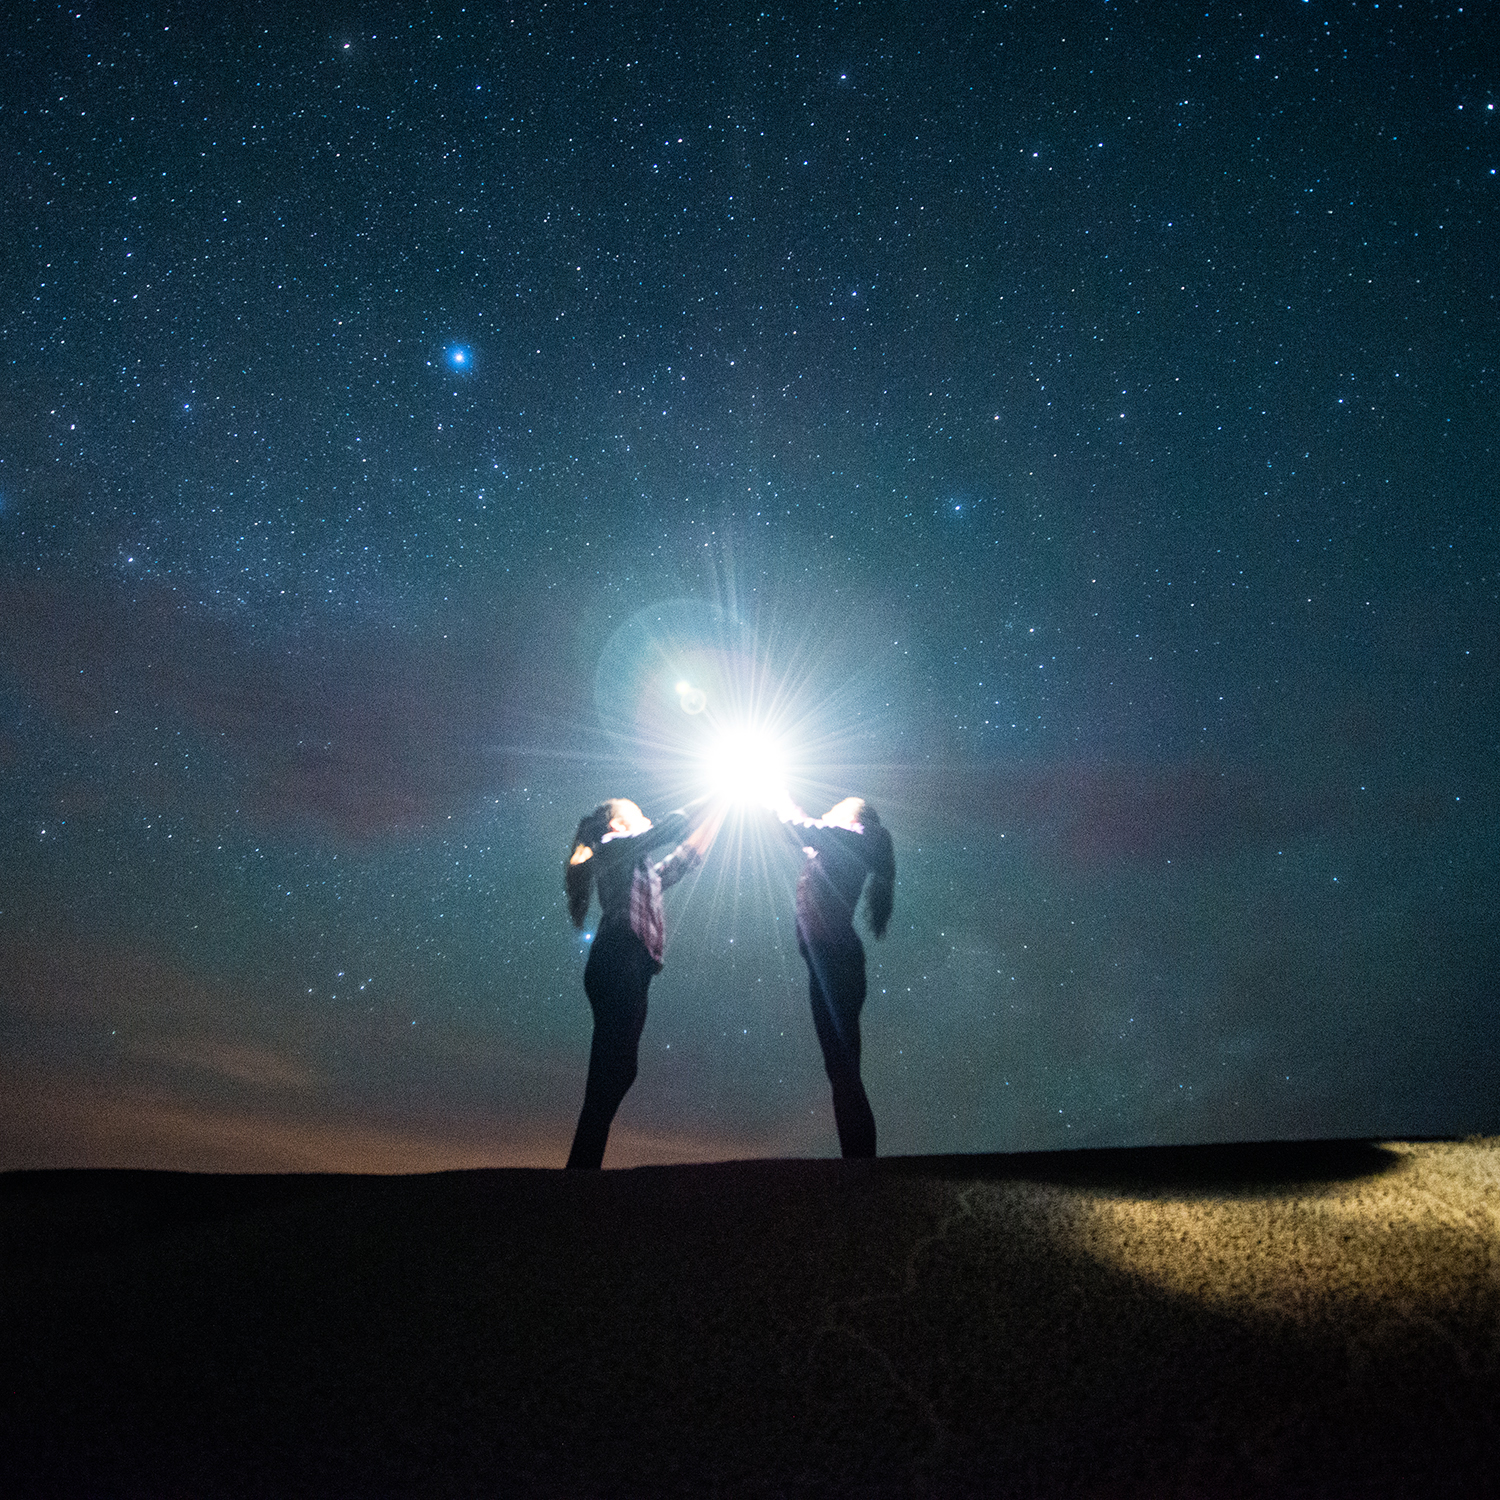 Storytellers Mission 6: Artificial Light